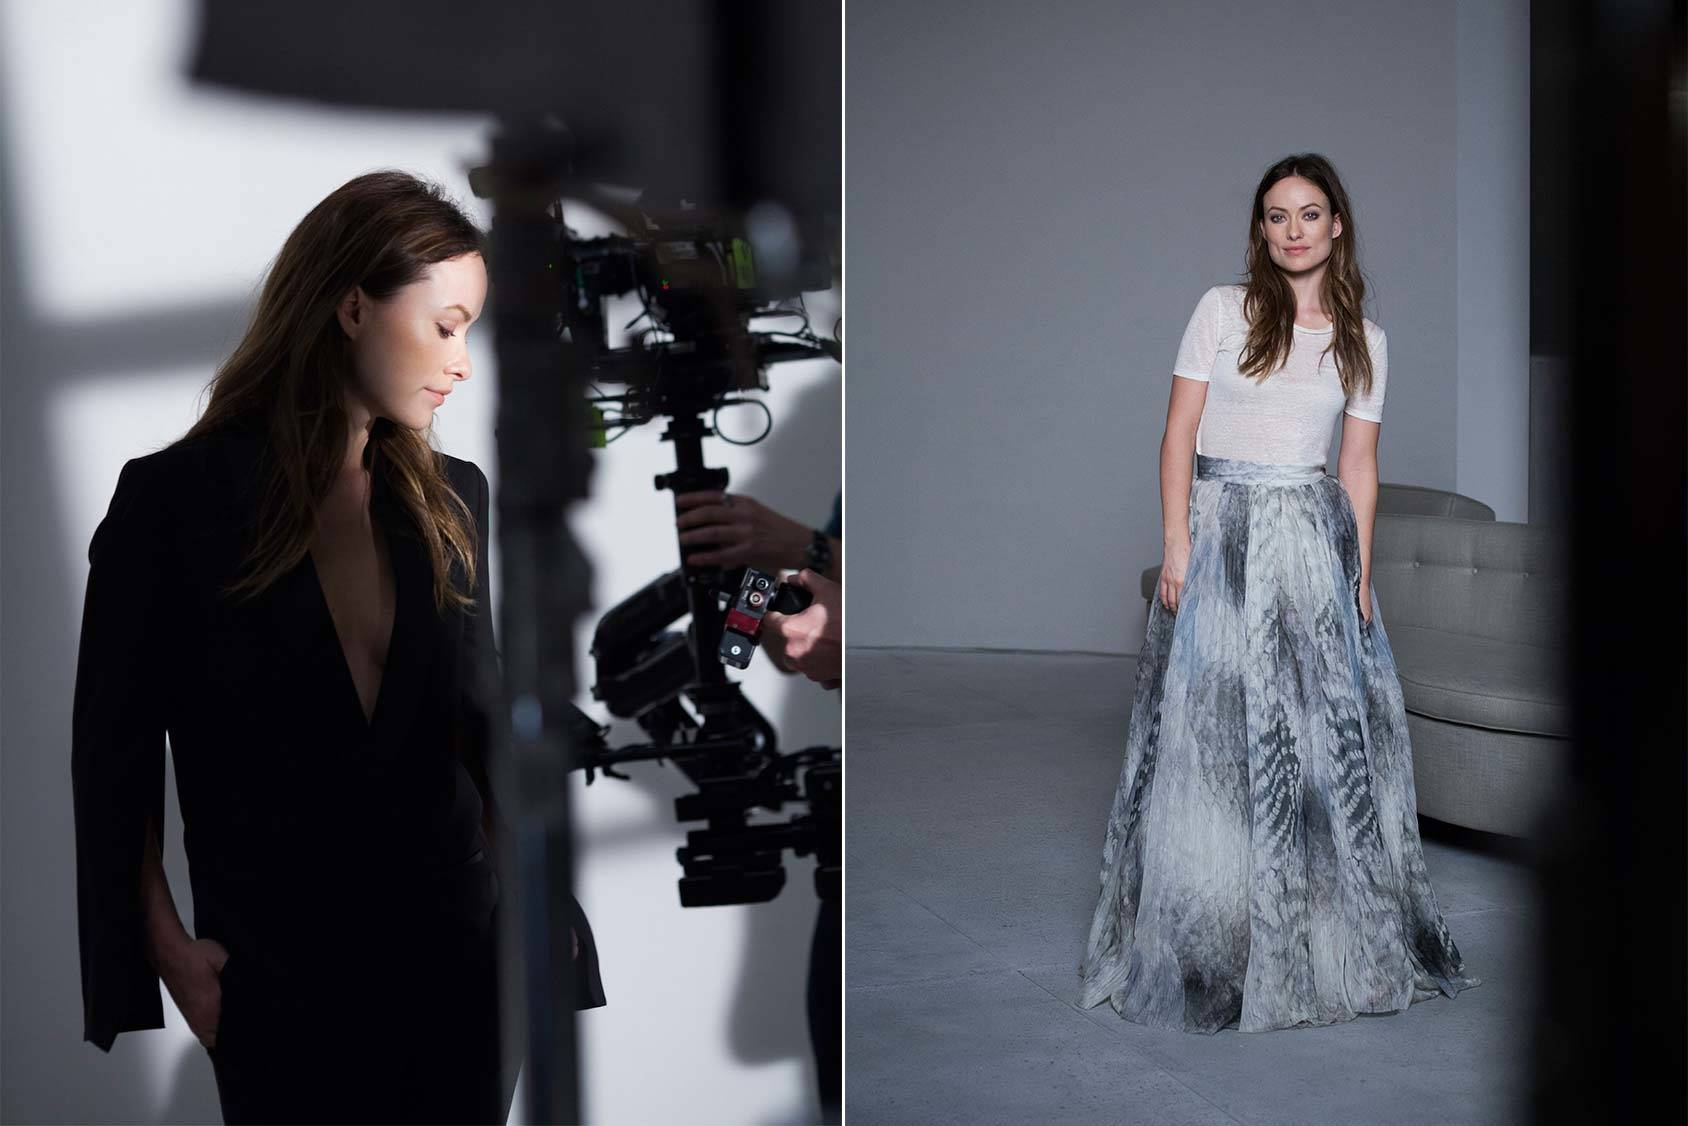 Olivia Wilde backstage for H&M Conscious Exclusive collection.